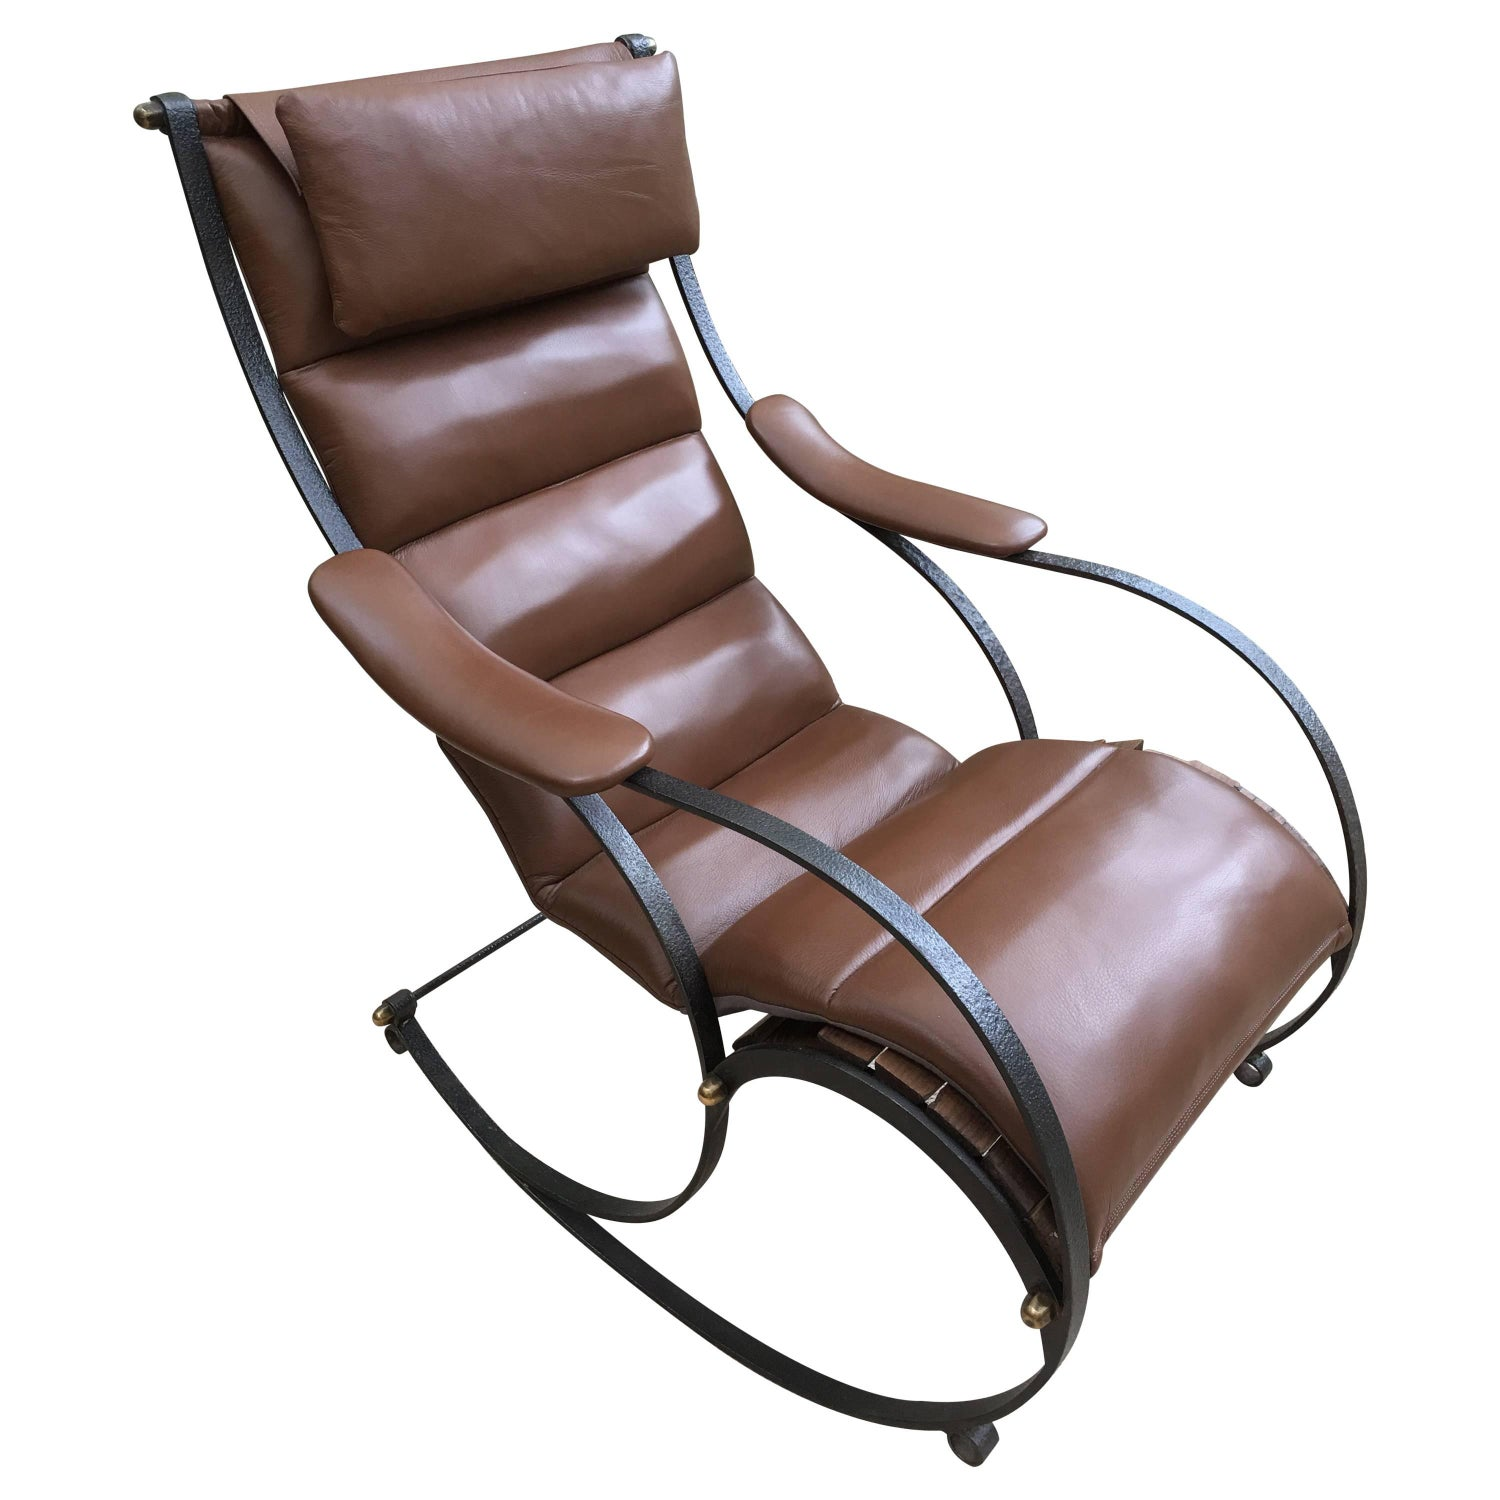 RW Winfield Design 19th Century Steel and Brown Leather Rocking